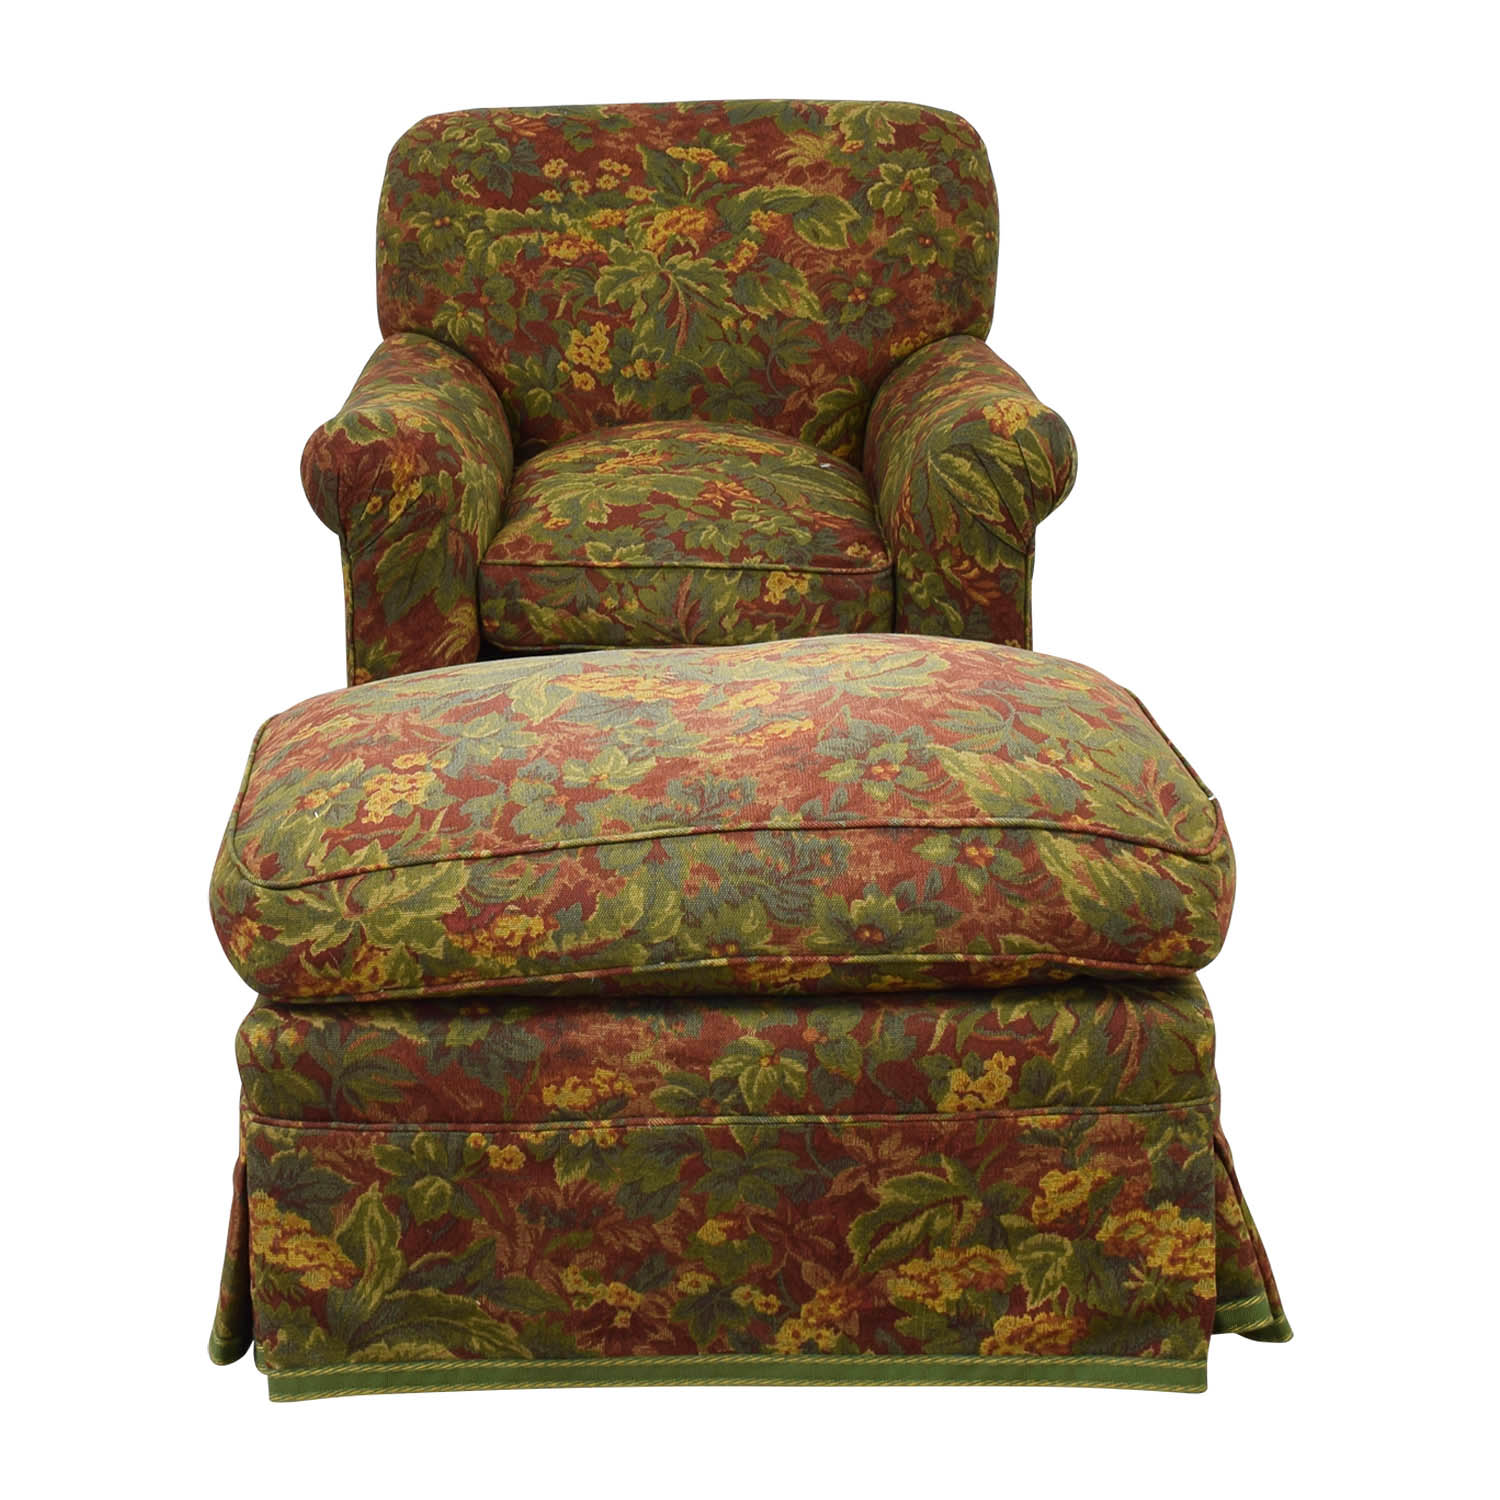 Down Filled Floral Accent Chair and Ottoman dimensions